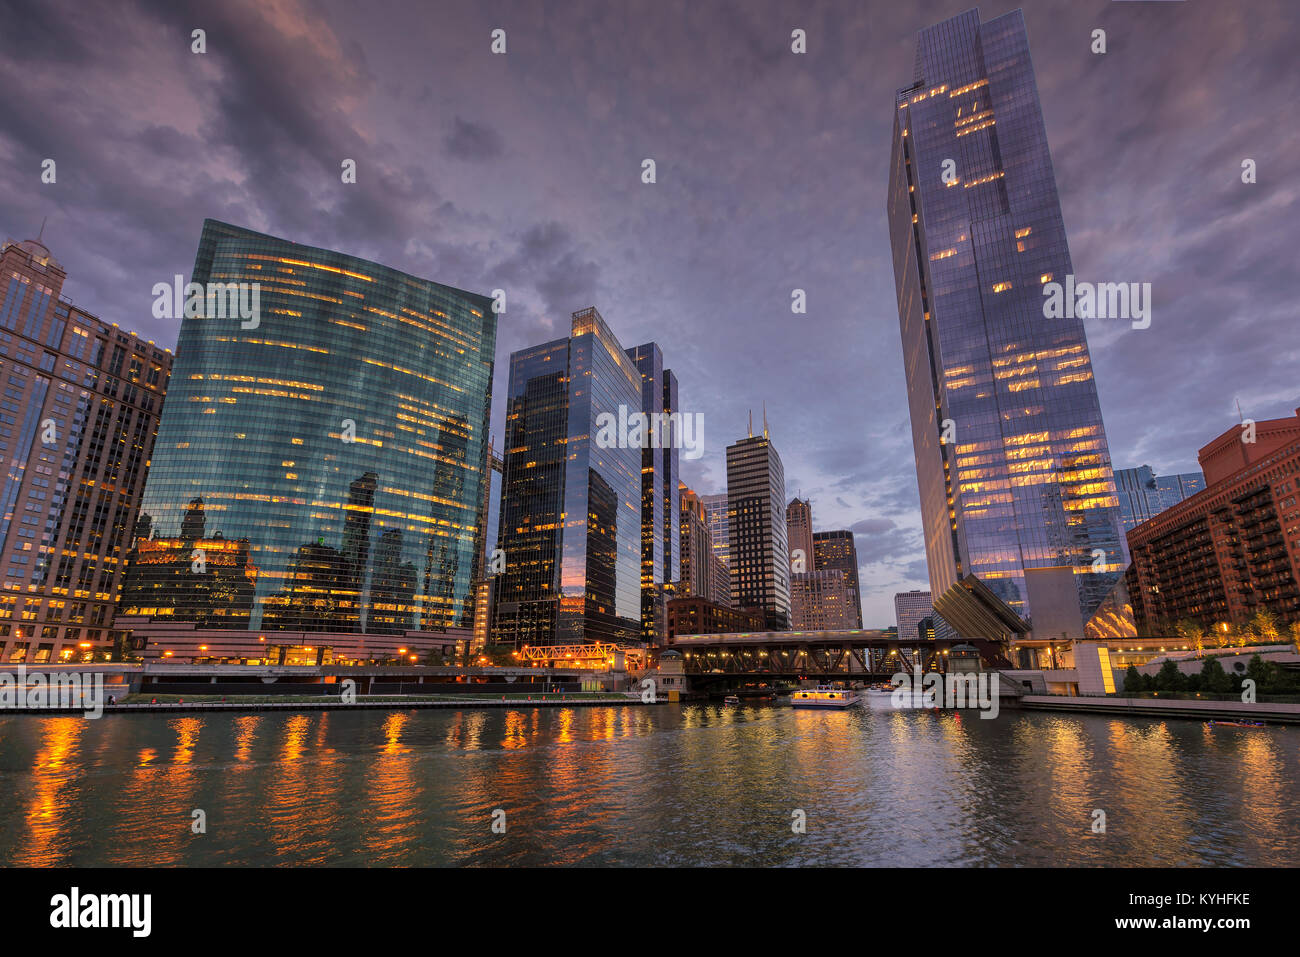 Chicago city skyline and Chicago river at dusk, Chicago, Illinois. - Stock Image